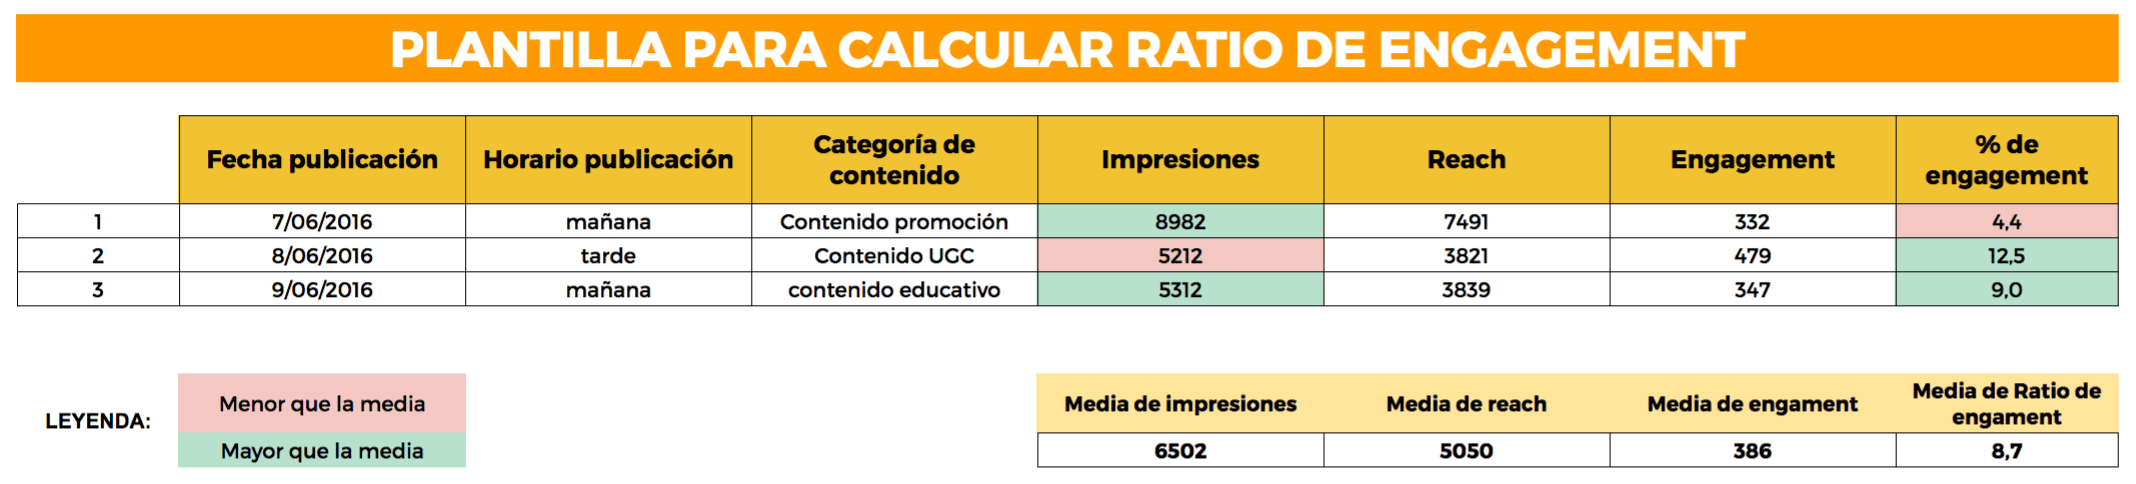 plantilla-ratio-de-engagement